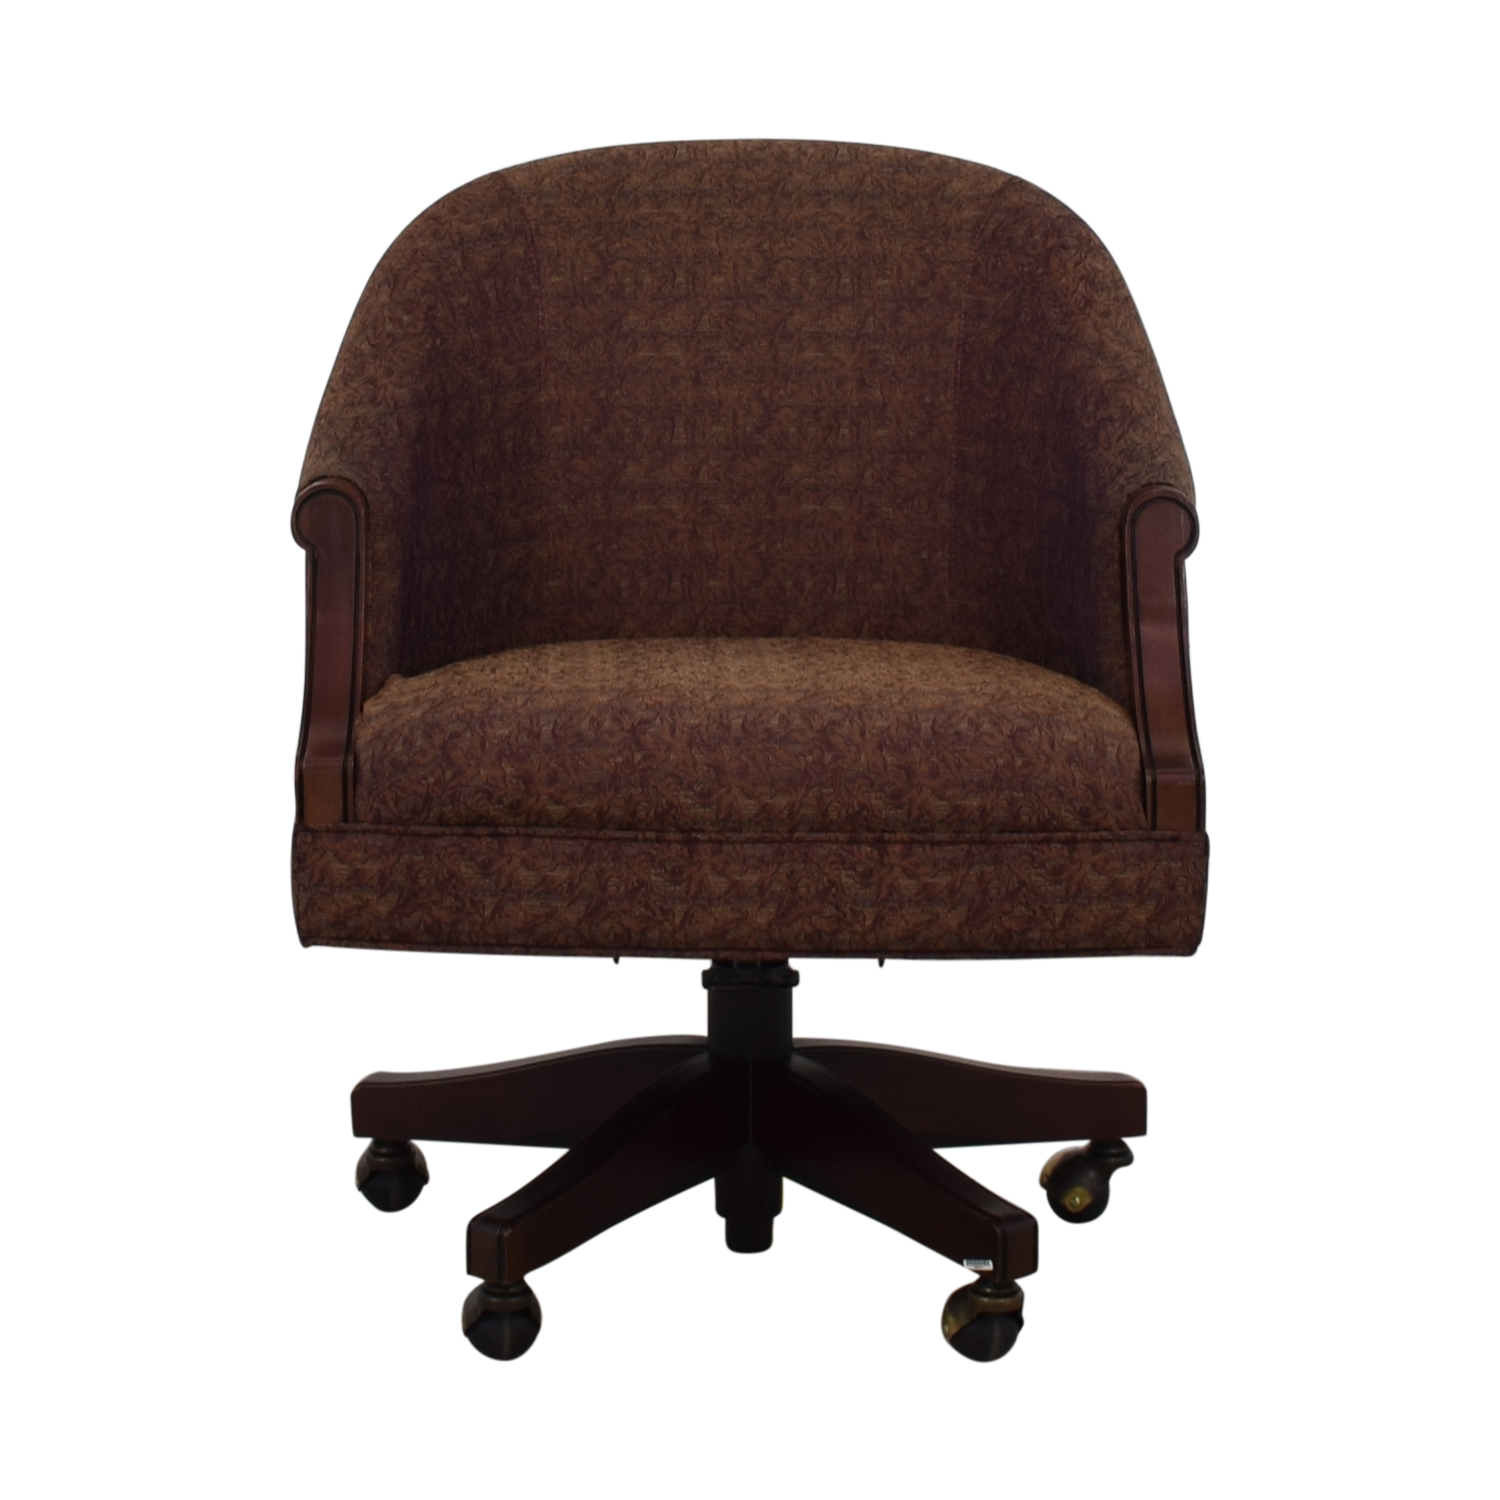 Kimball Kimball Independence Newcastle Swivel Chair